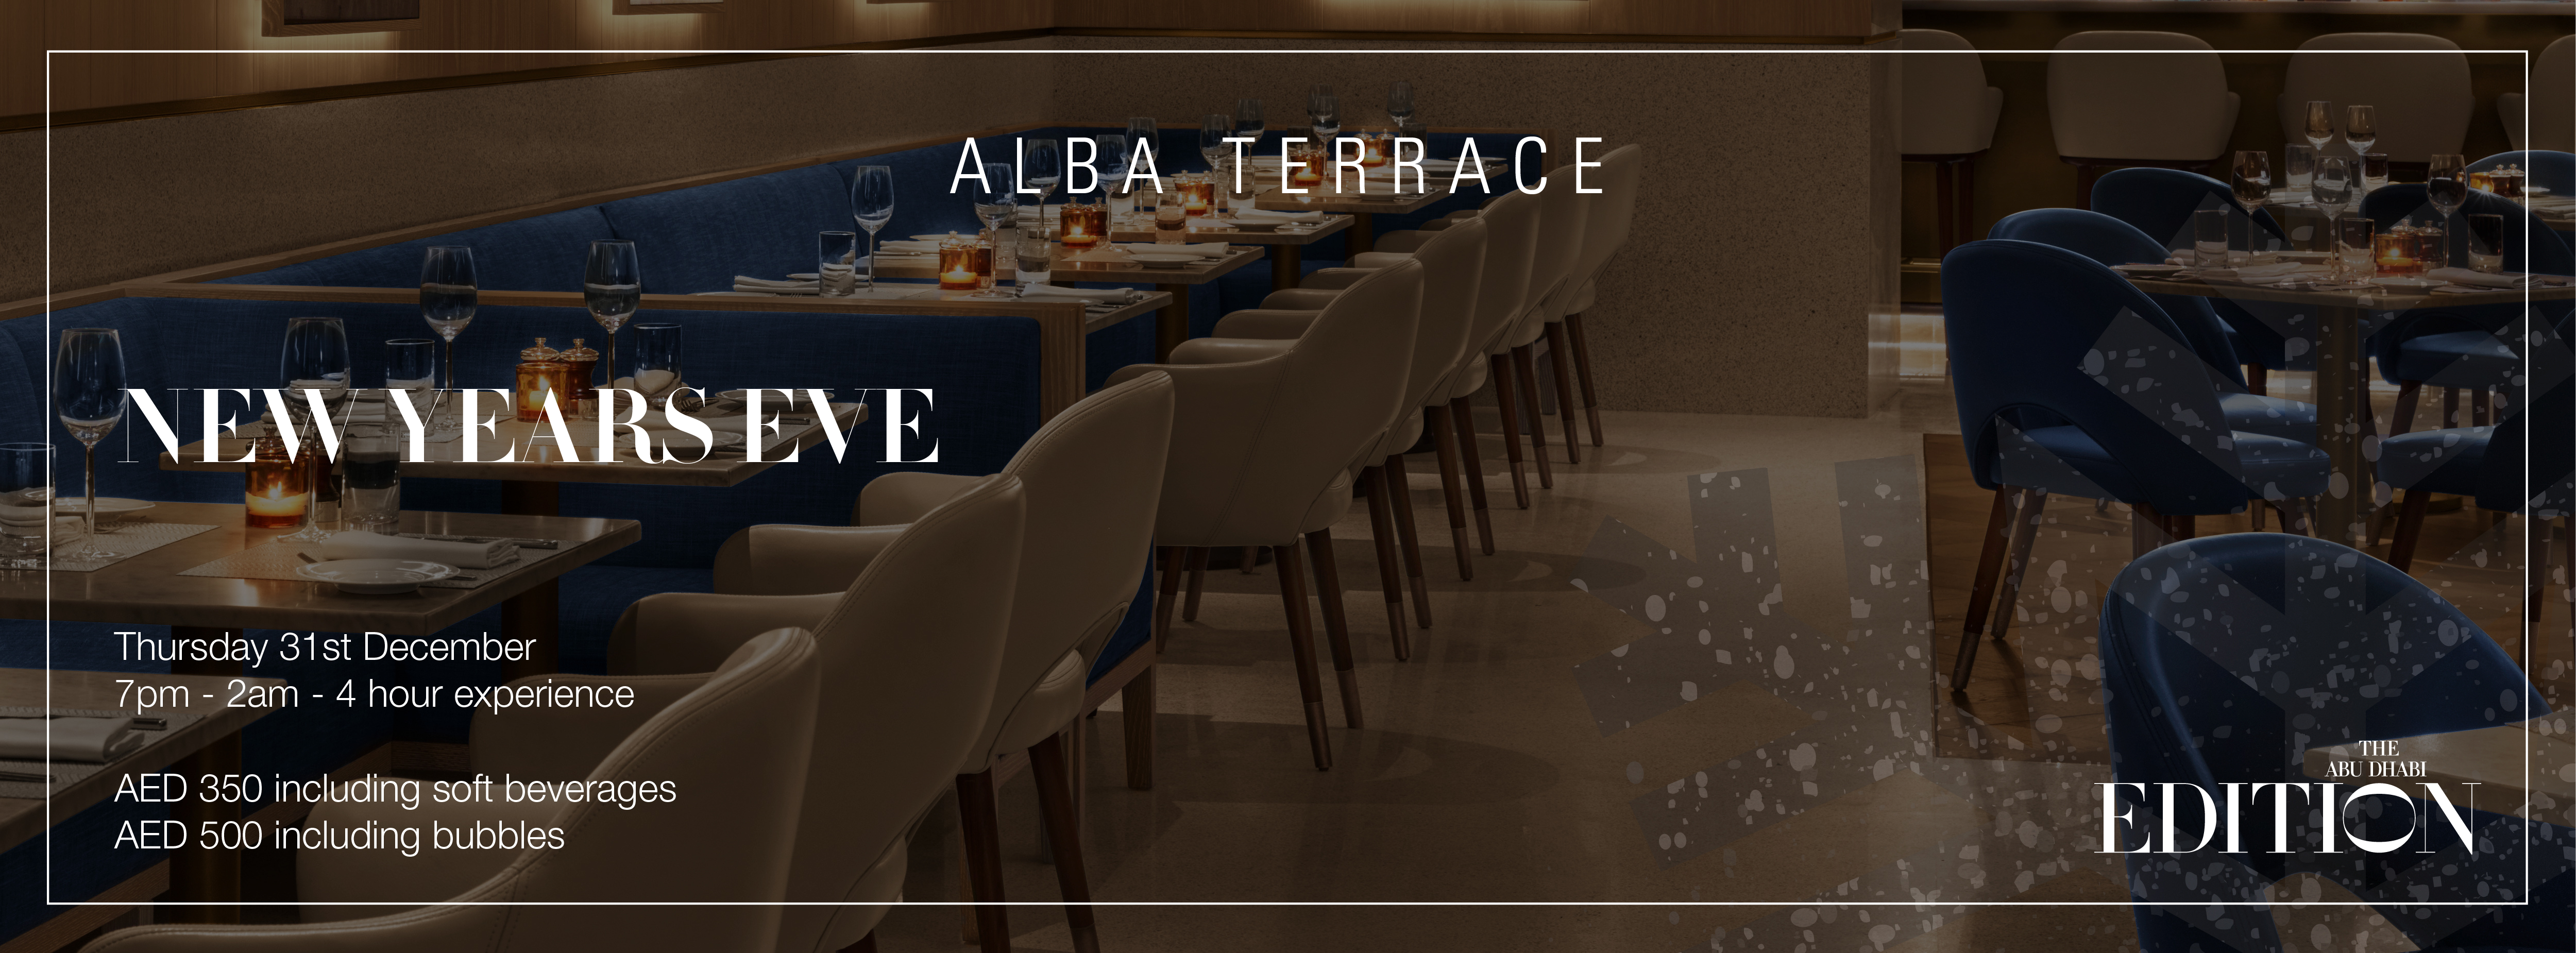 New Year's Eve @ Alba Terrace